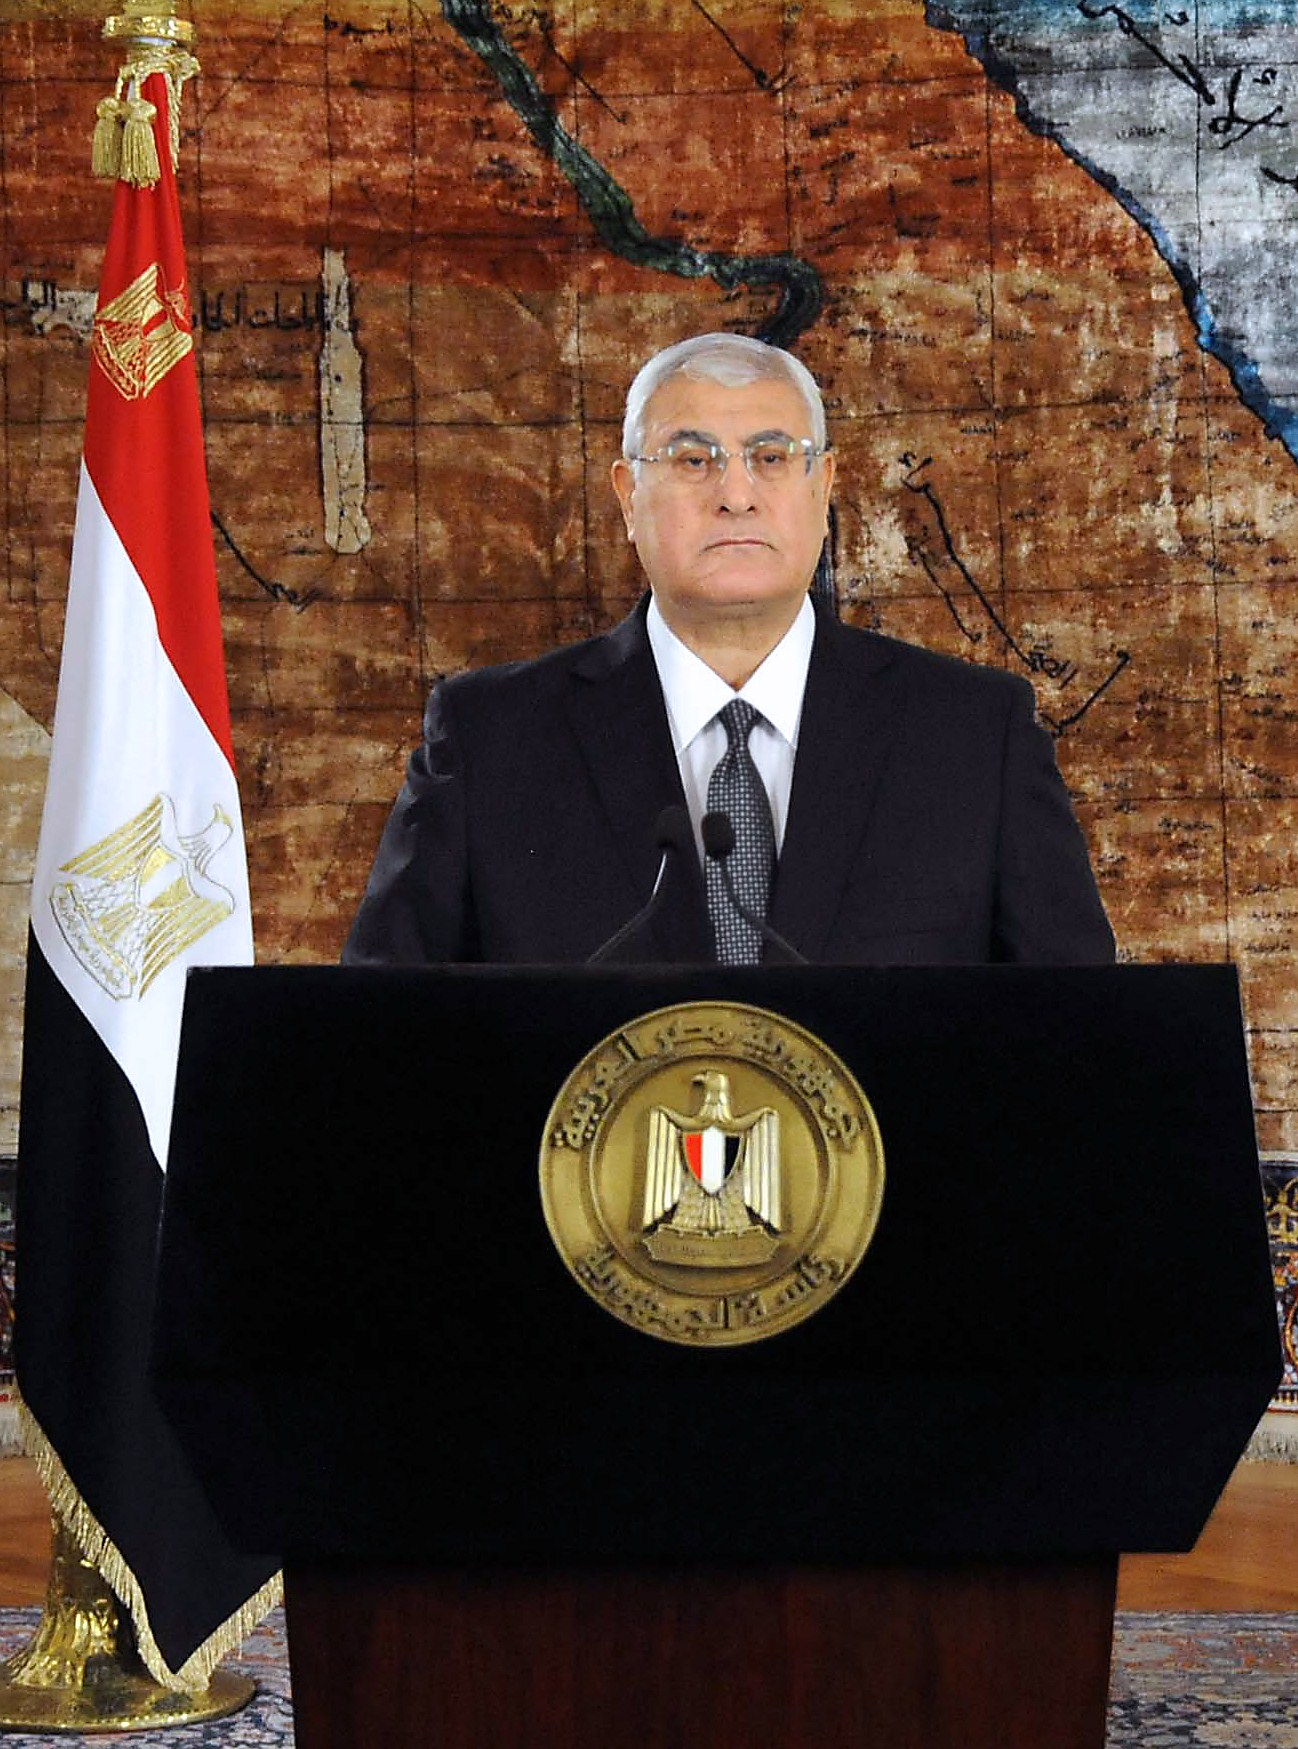 A handout picture released by the Egyptian Presidency shows Egypt's interim president Adly Mansour giving a speech after a ceremony at the memorial of the Unknown Soldier and tombs of late Egyptian presidents on October 5, 2013 in Cairo, as part of the celebrations marking the 40th anniversary of October War Victory. (AFP PHOTO EGYPTIAN PRESIDENCY)